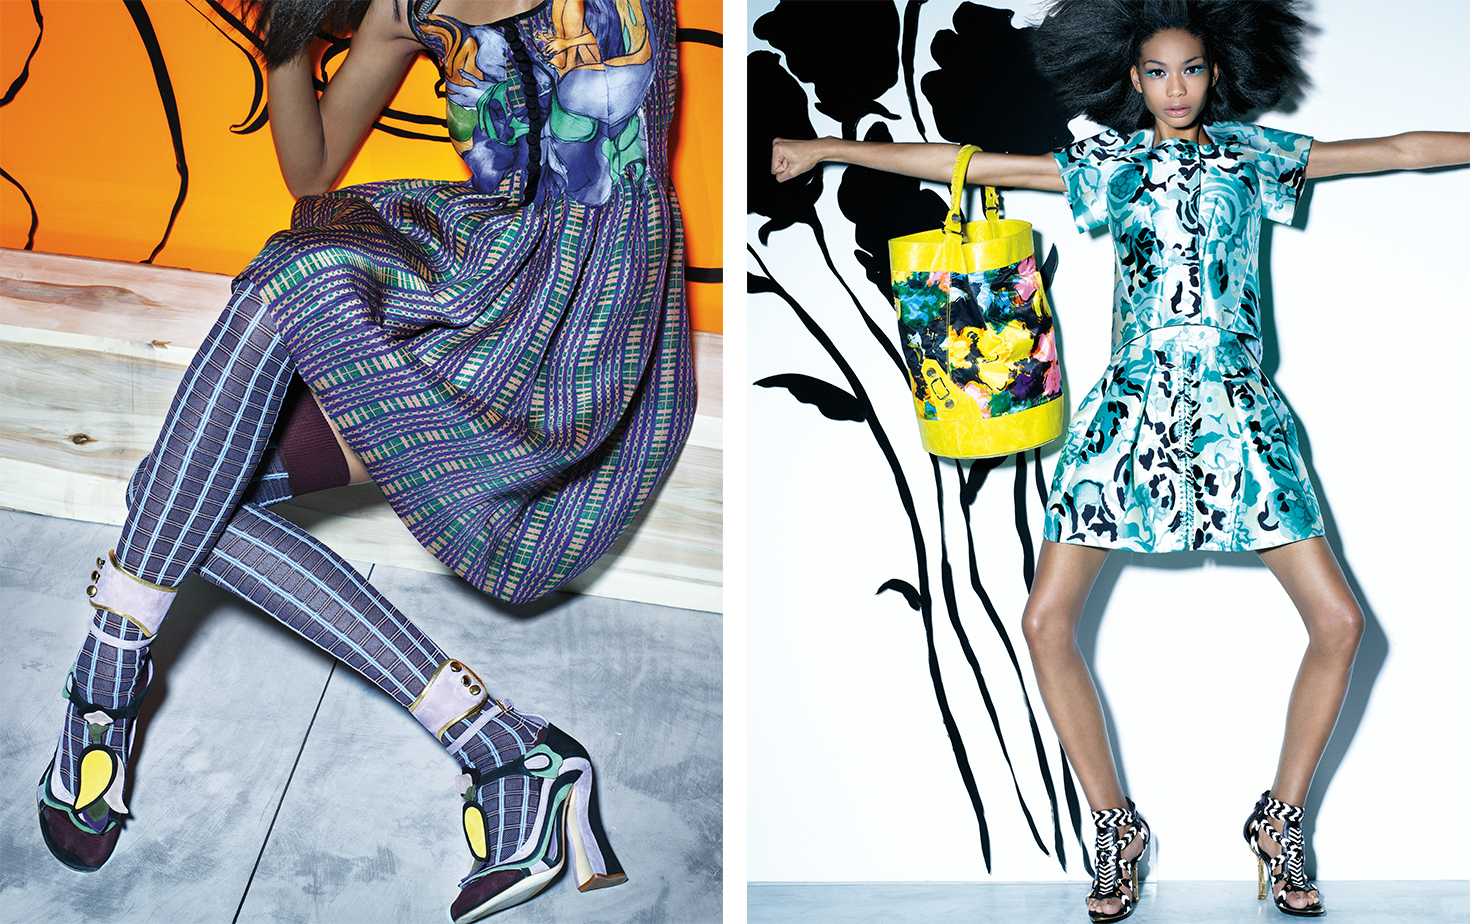 Vogue FULL TINT AHEAD   FASHION EDITOR Elissa Santisi MODEL Chanel Iman